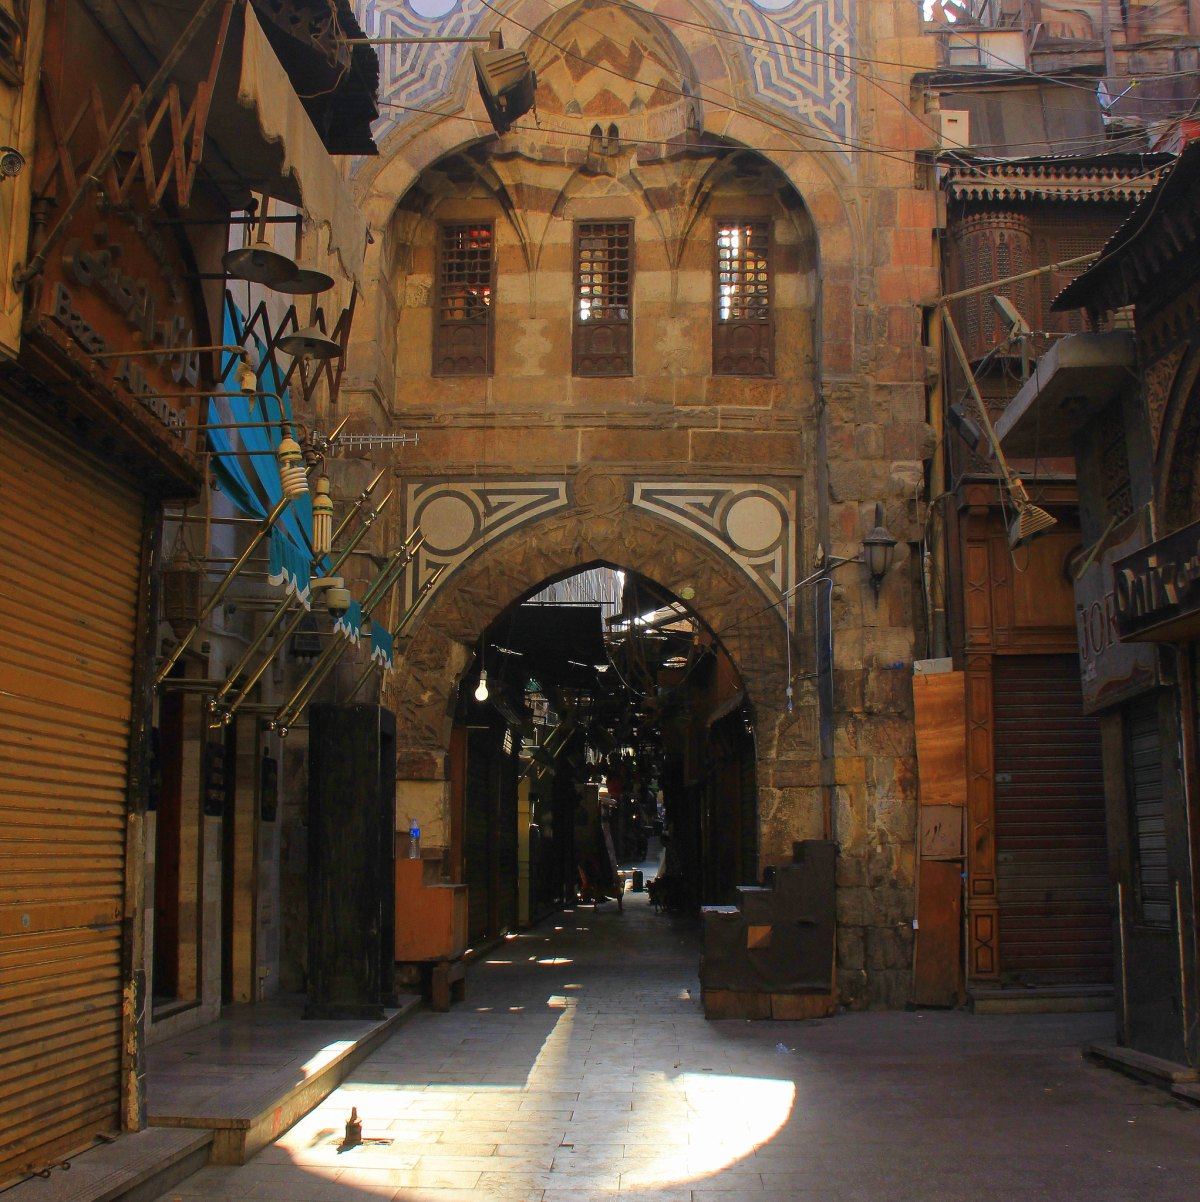 Maul style architecture is visible at khan el khalili market